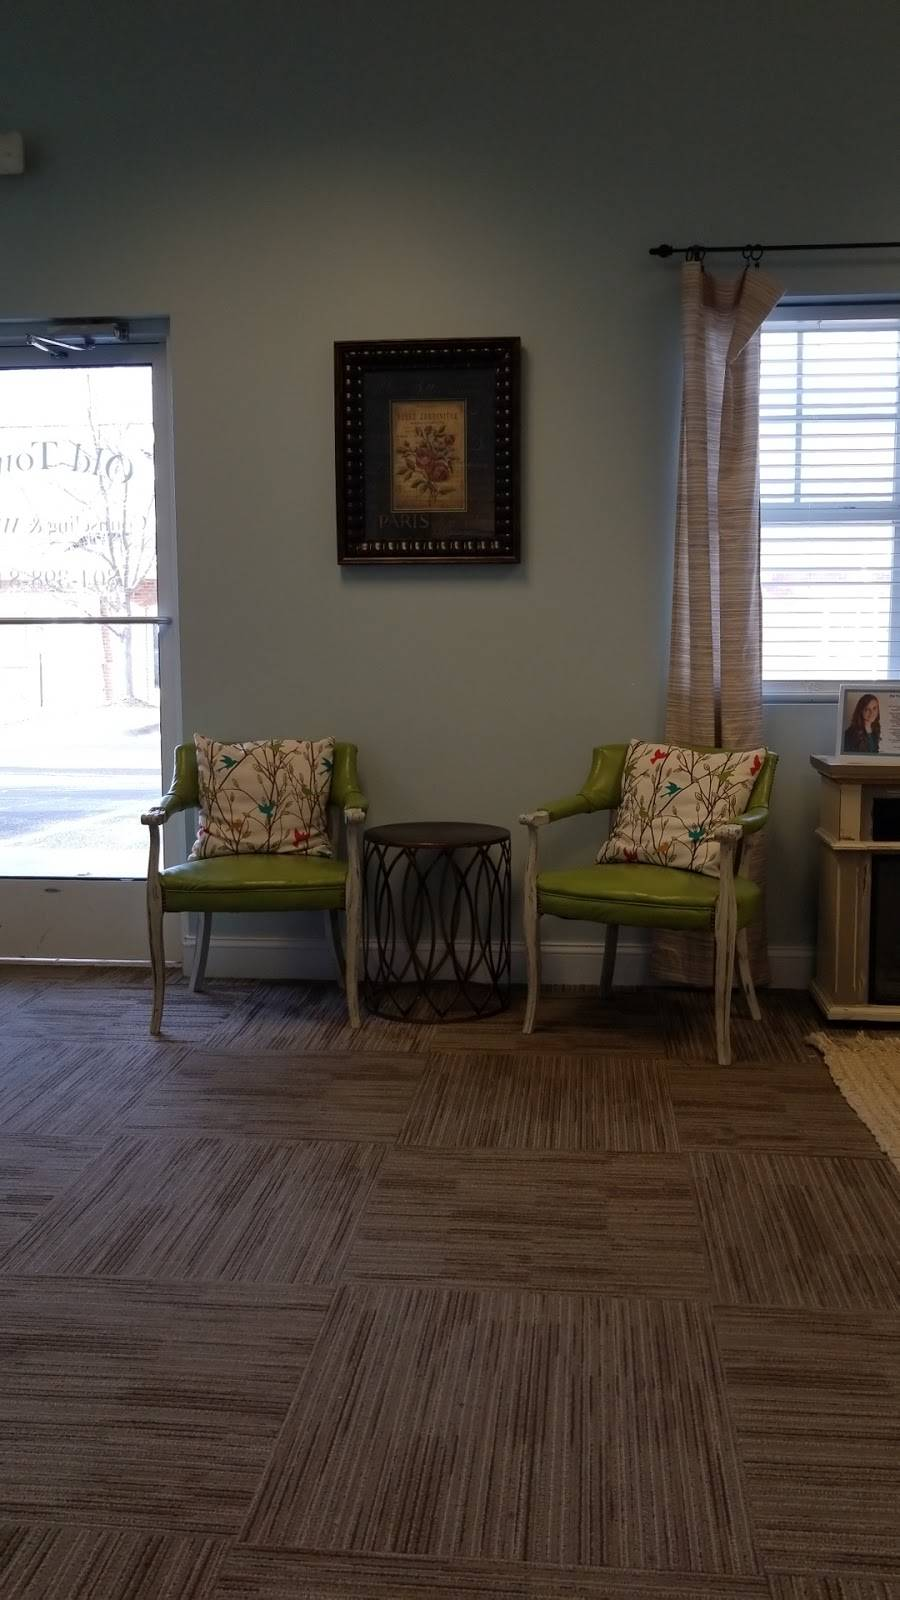 Old Towne Counseling Services - health    Photo 4 of 4   Address: 7489 Right Flank Rd, Mechanicsville, VA 23116, USA   Phone: (804) 398-8401